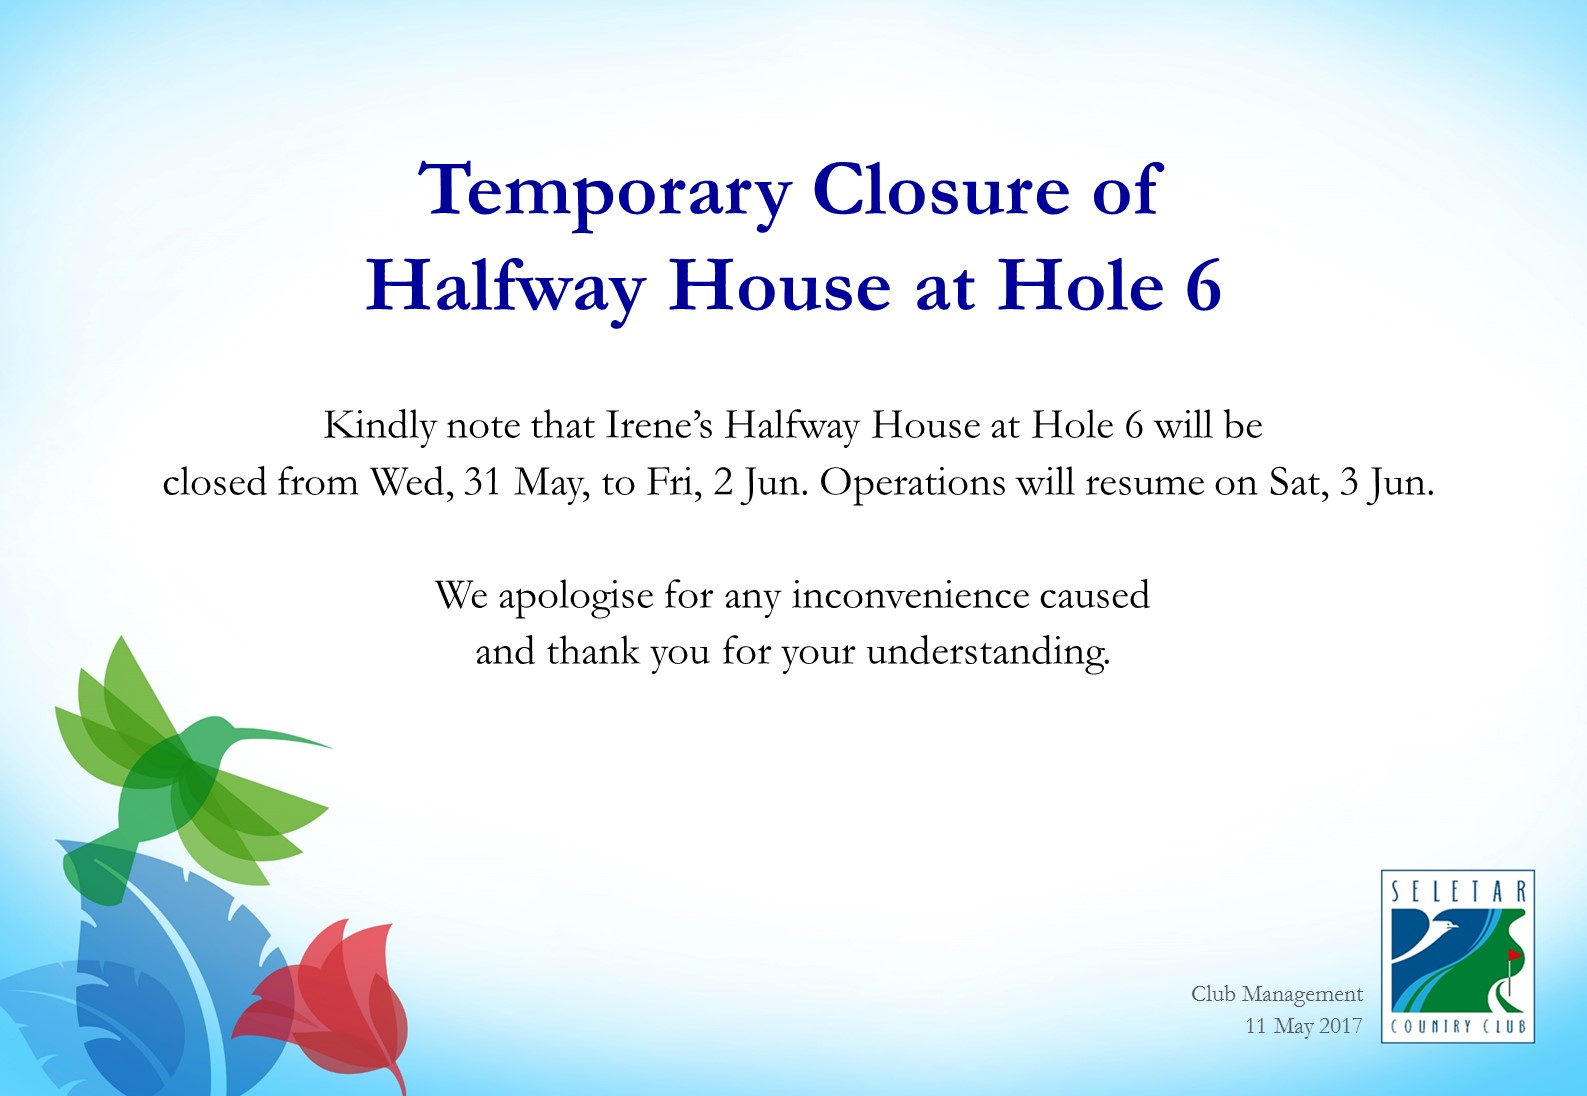 Temporary closure of halfway house at Hole 6